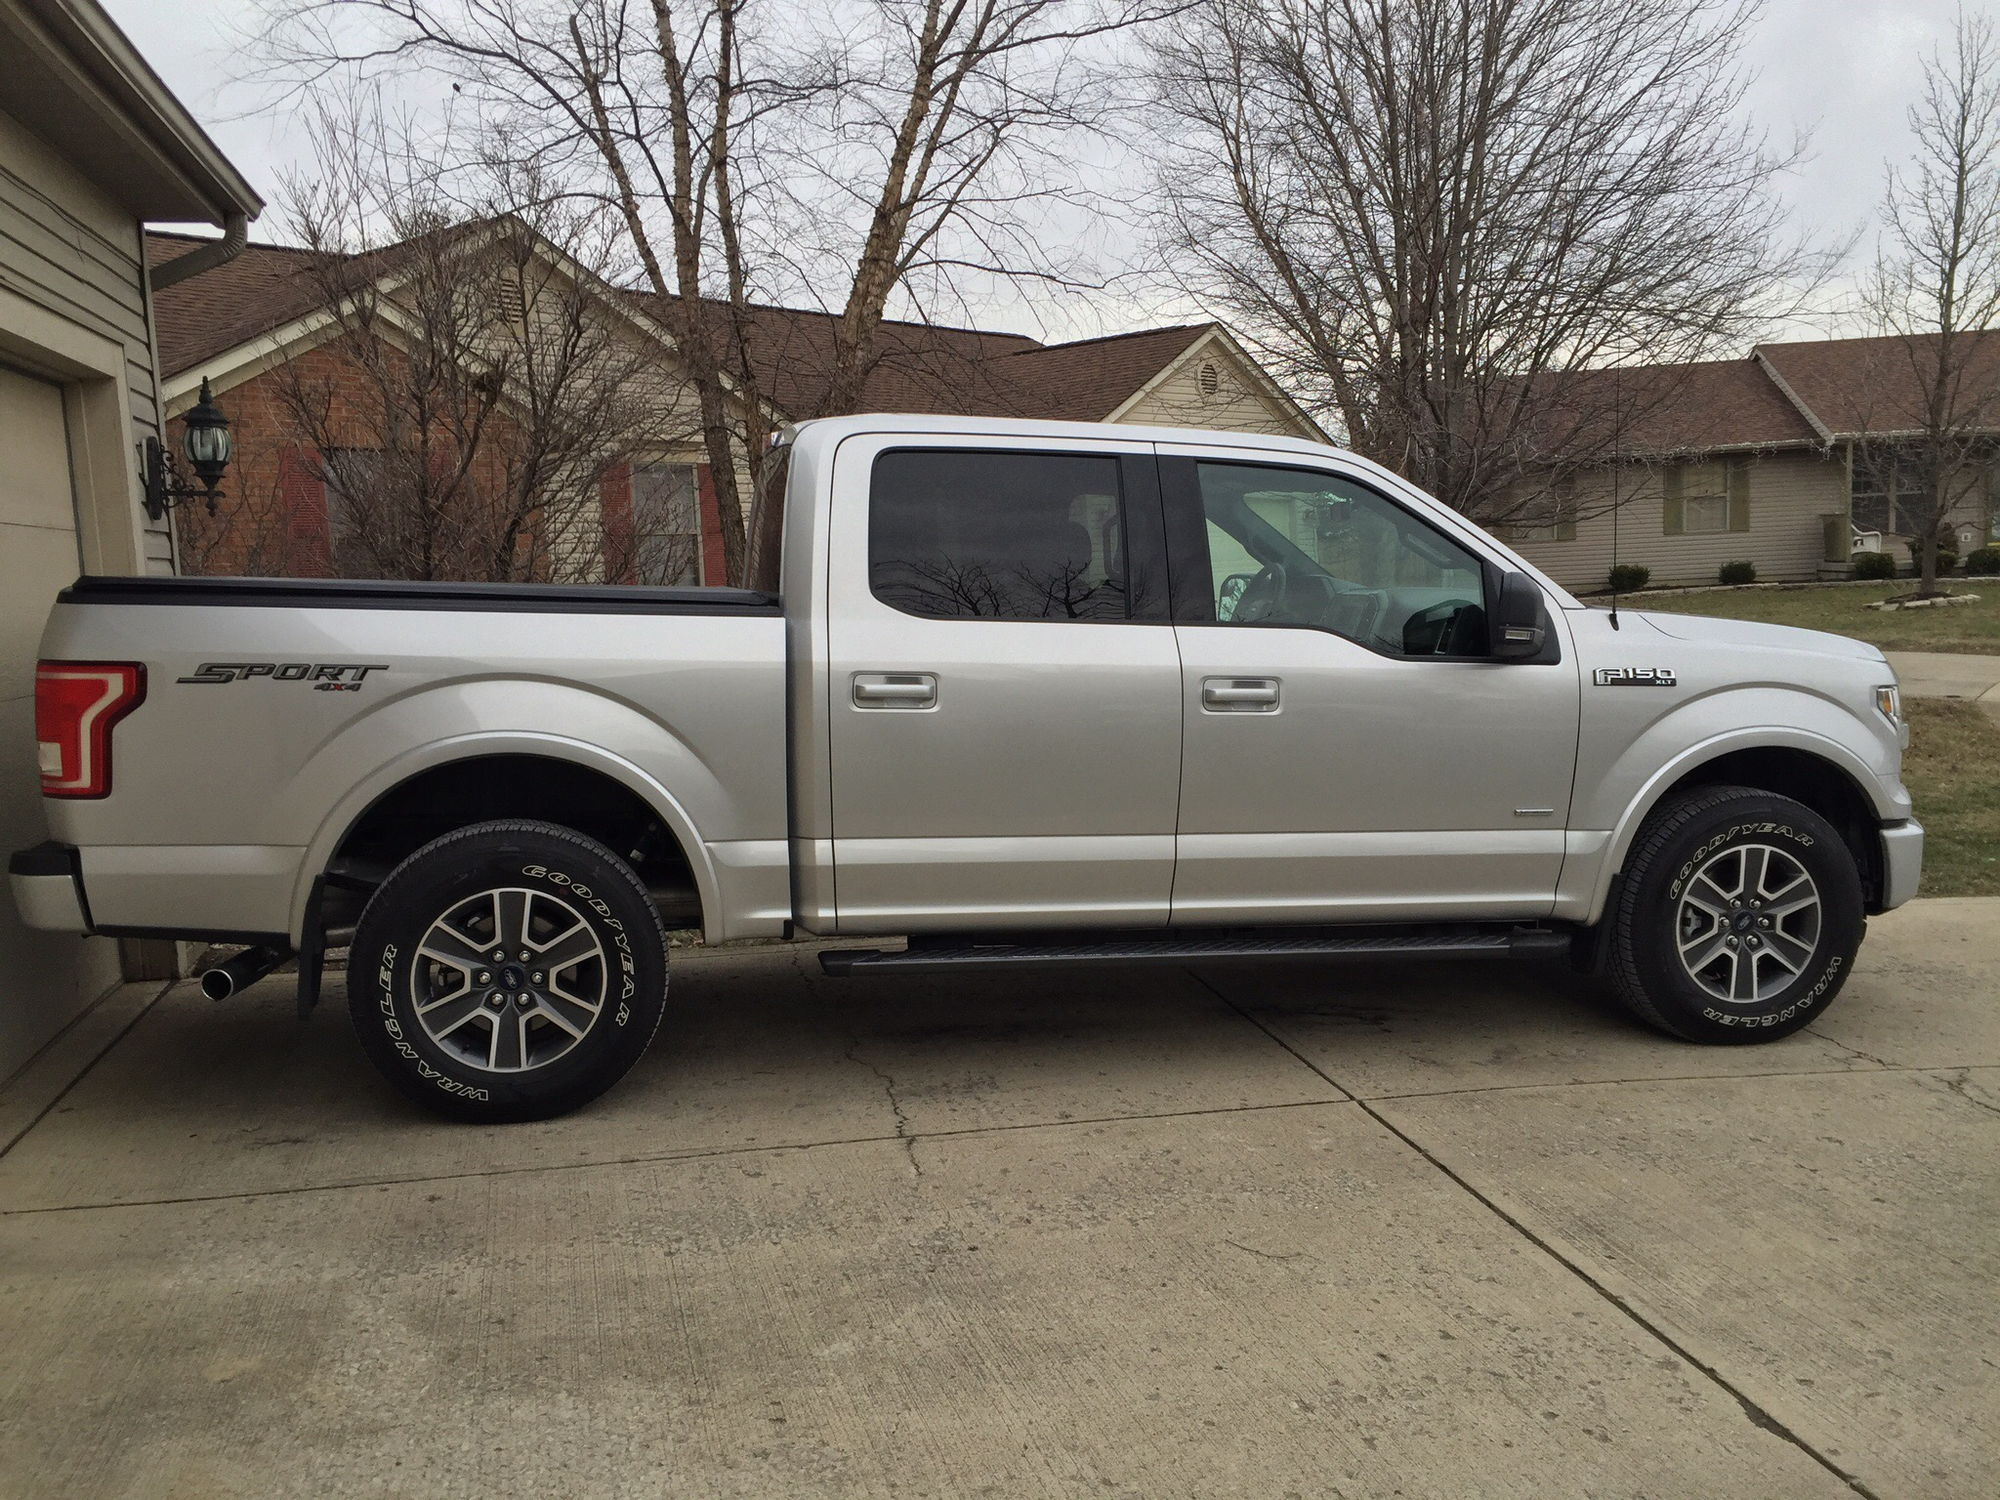 Ford Dealers Nj >> 2015 Ram Truck Delivery Date To Deals | Autos Post